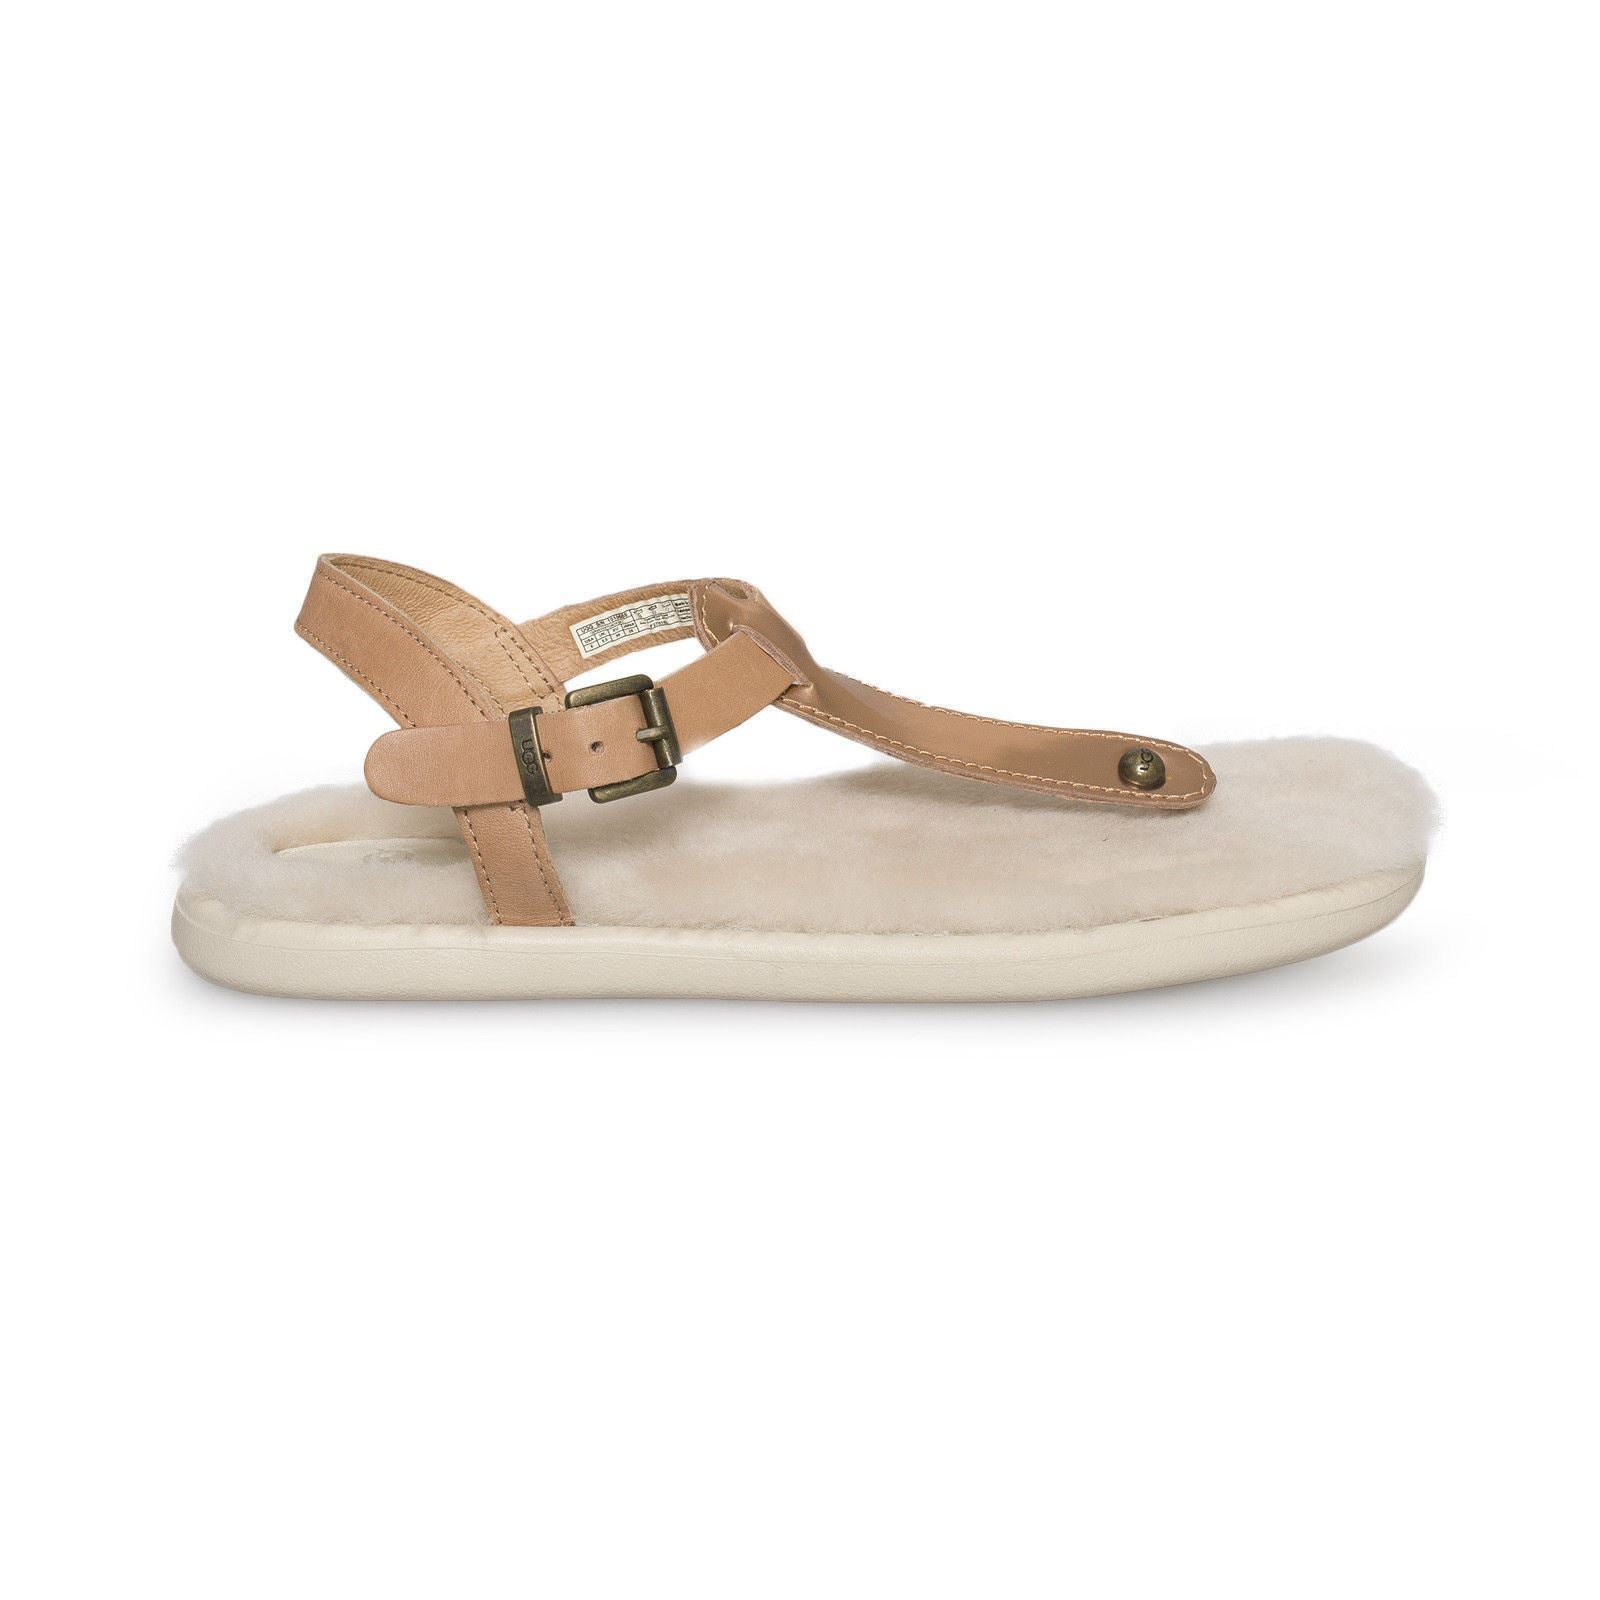 00a4629cf24 UGG Lou Lou Rose Gold Sandals